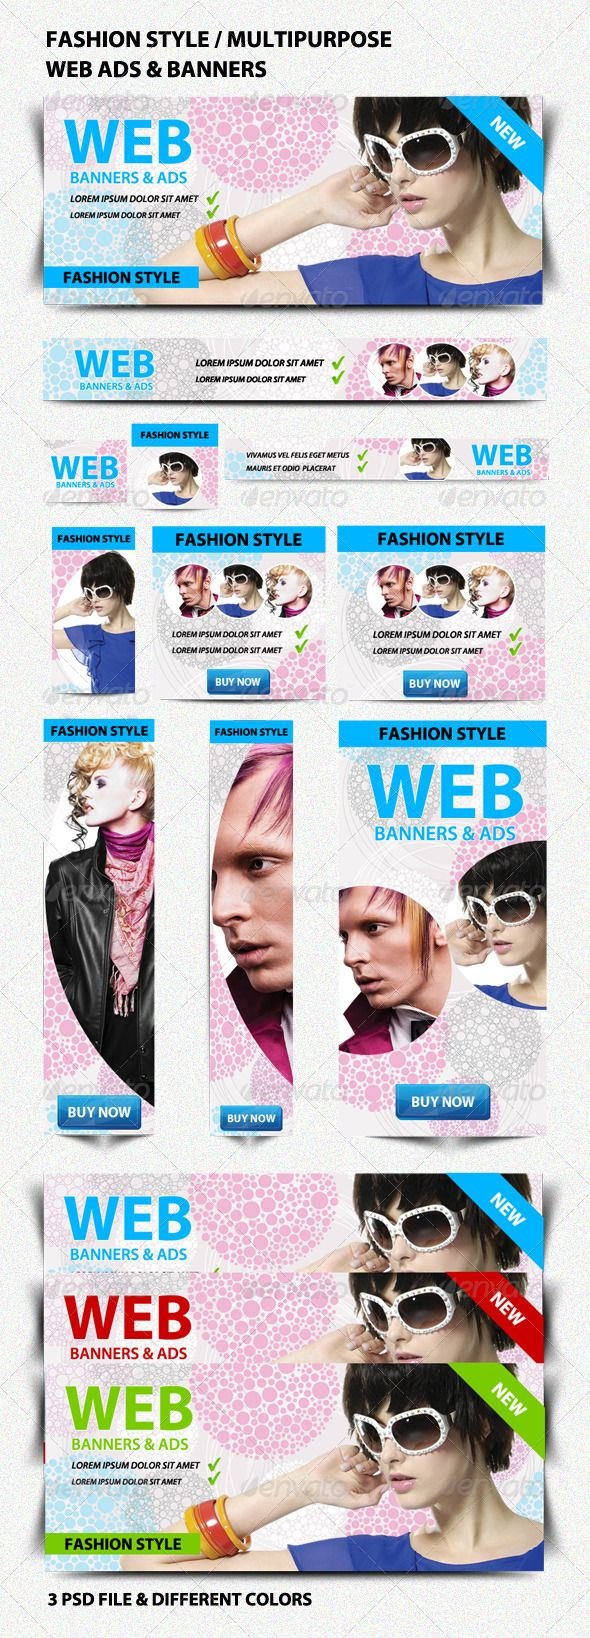 Web banners, banner designs, banner designer  Sandy Rowley favorites.  Beautiful banner design. Call anytime 775 453 6120. www.renowebdesigner.com  Web Elements - Fashion Style/Multipurpose Web Ads  Banners | GraphicRiver